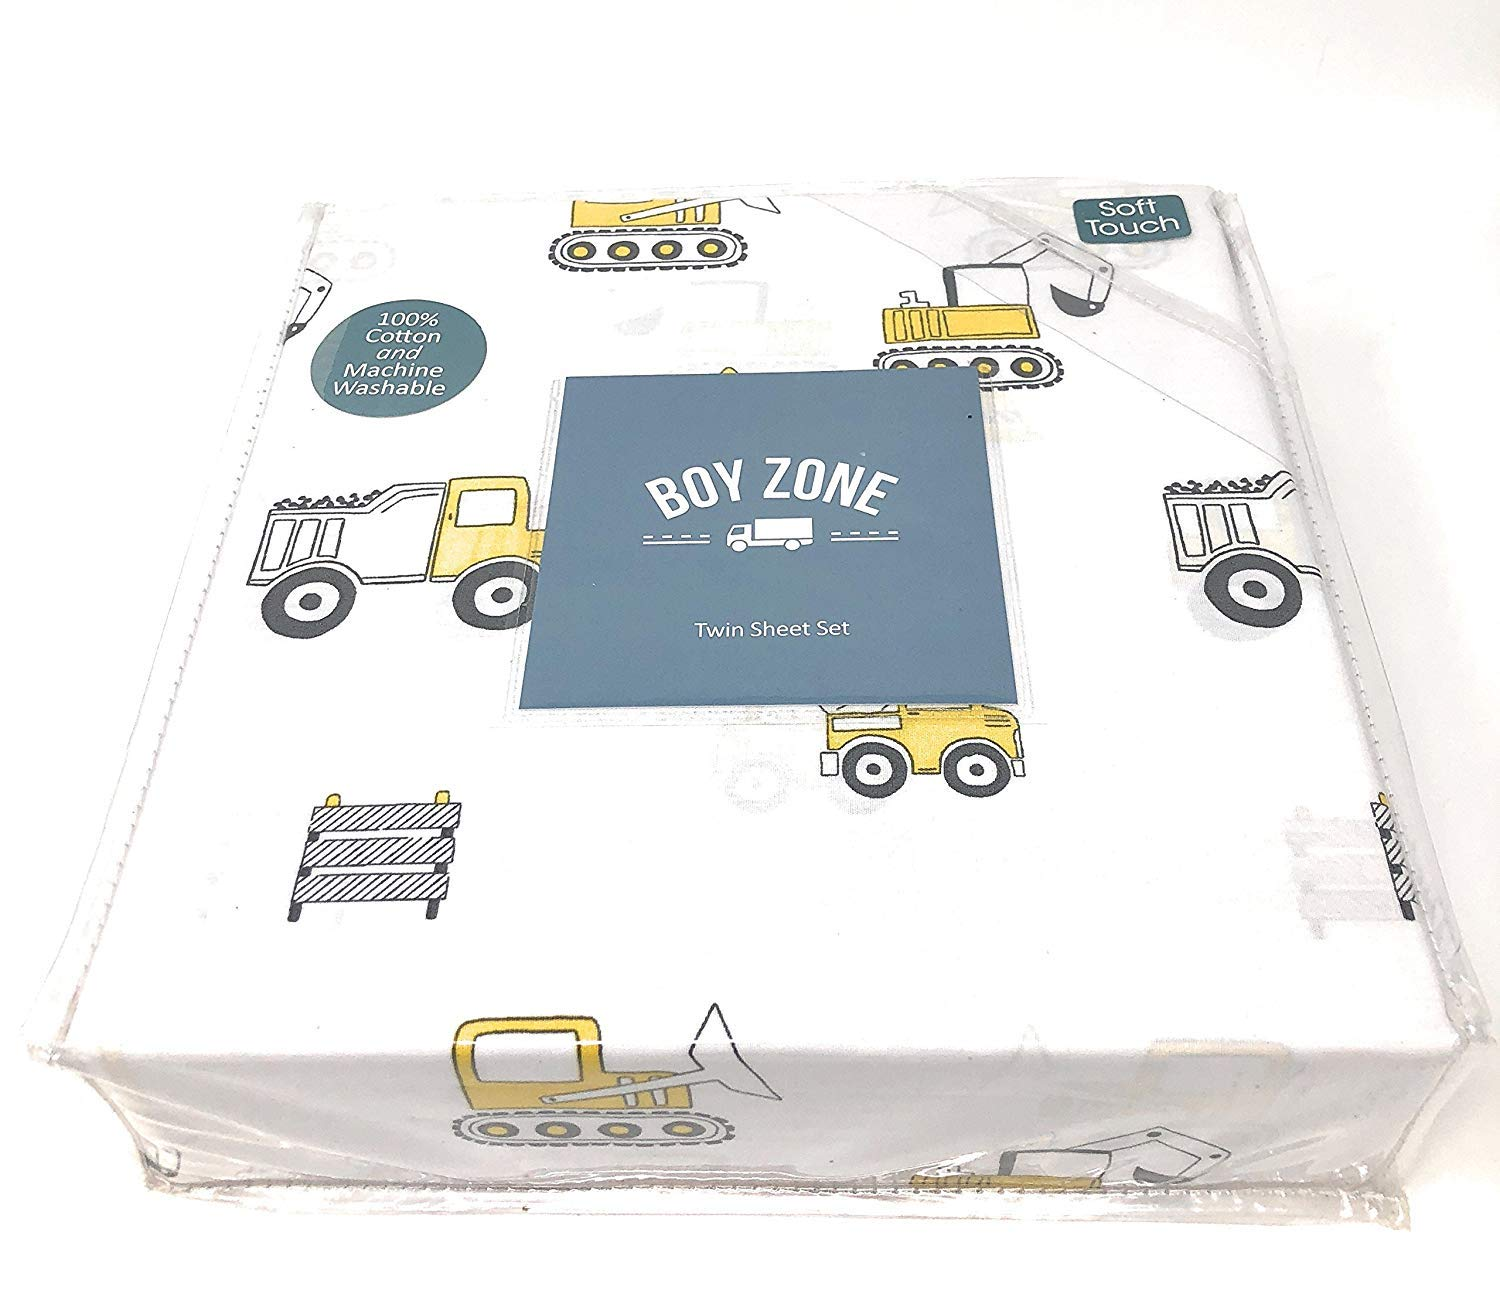 Boy Zone TWIN Sheet Set | 100% cotton | Construction vehicles (trucks, front loaders, dump trucks) | Mustard Yellow/White